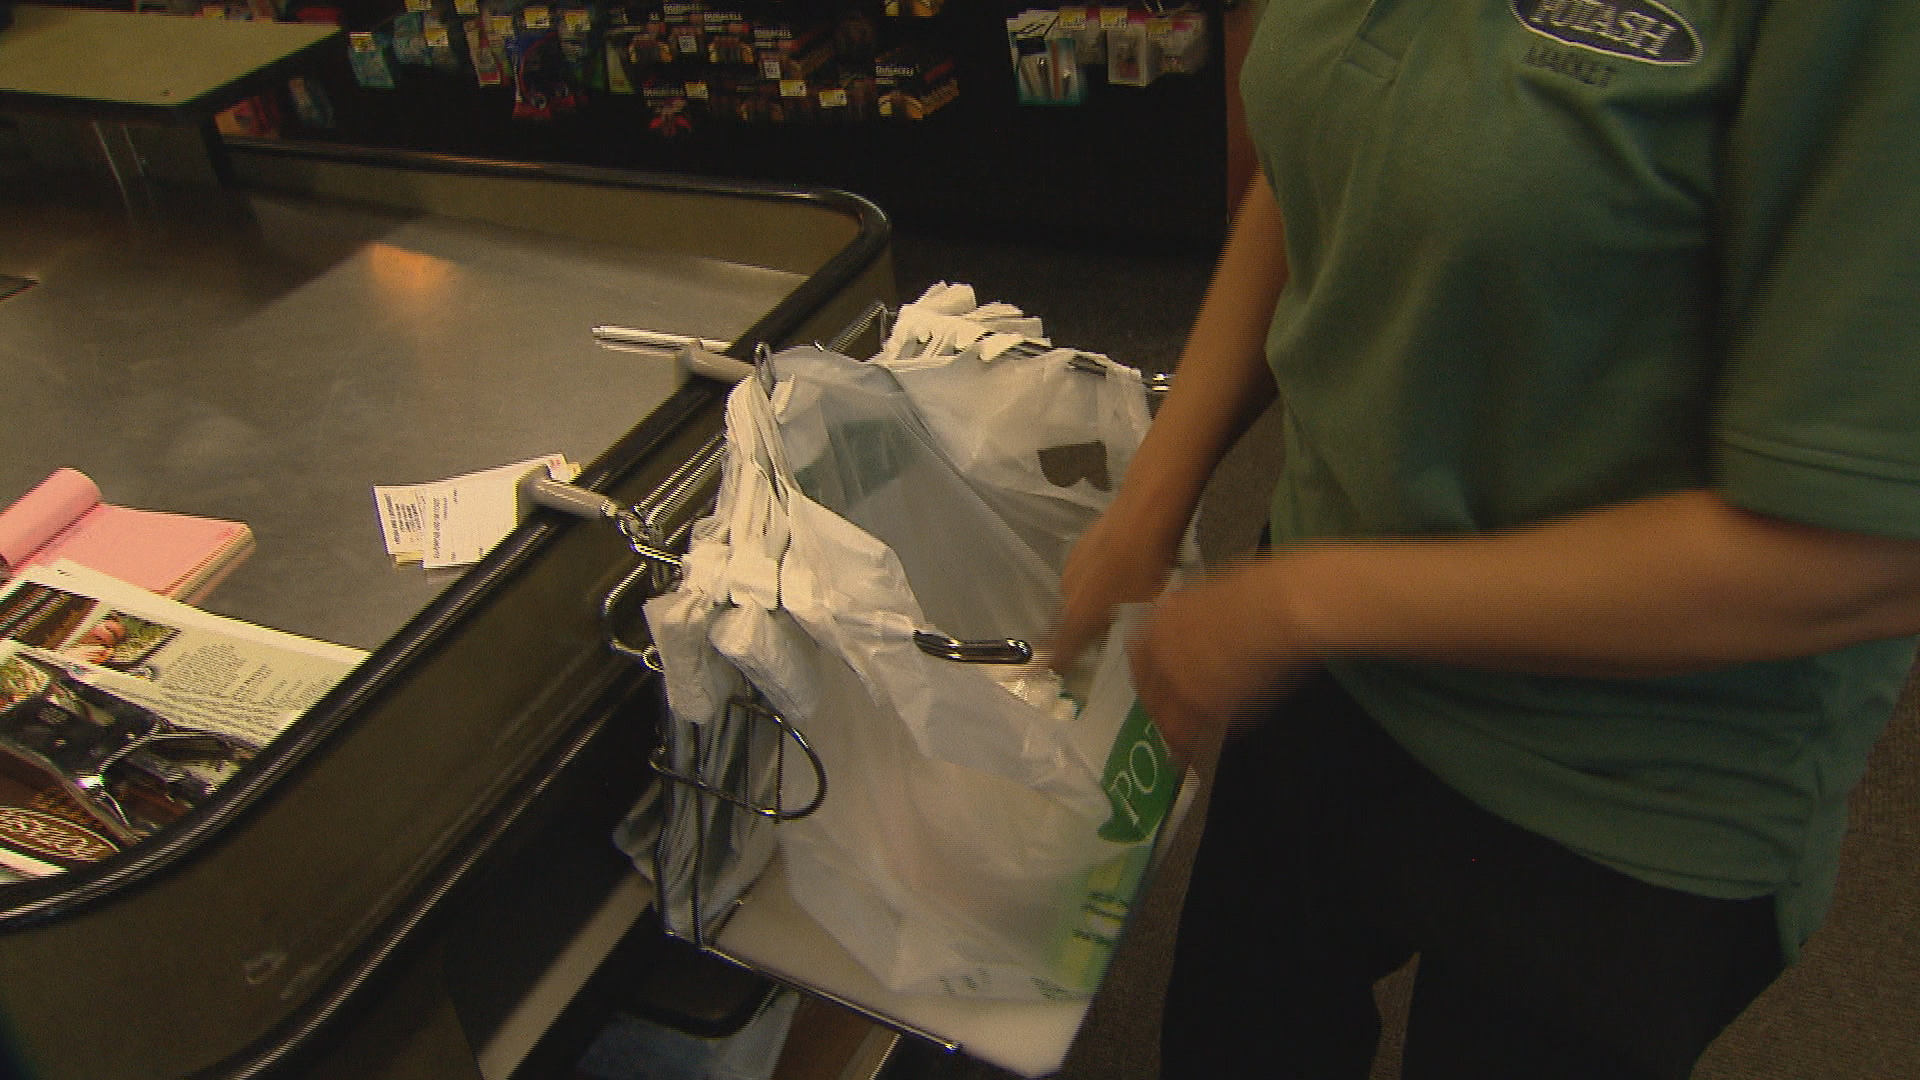 Plastic bag ban chicago - What About Paper Bags